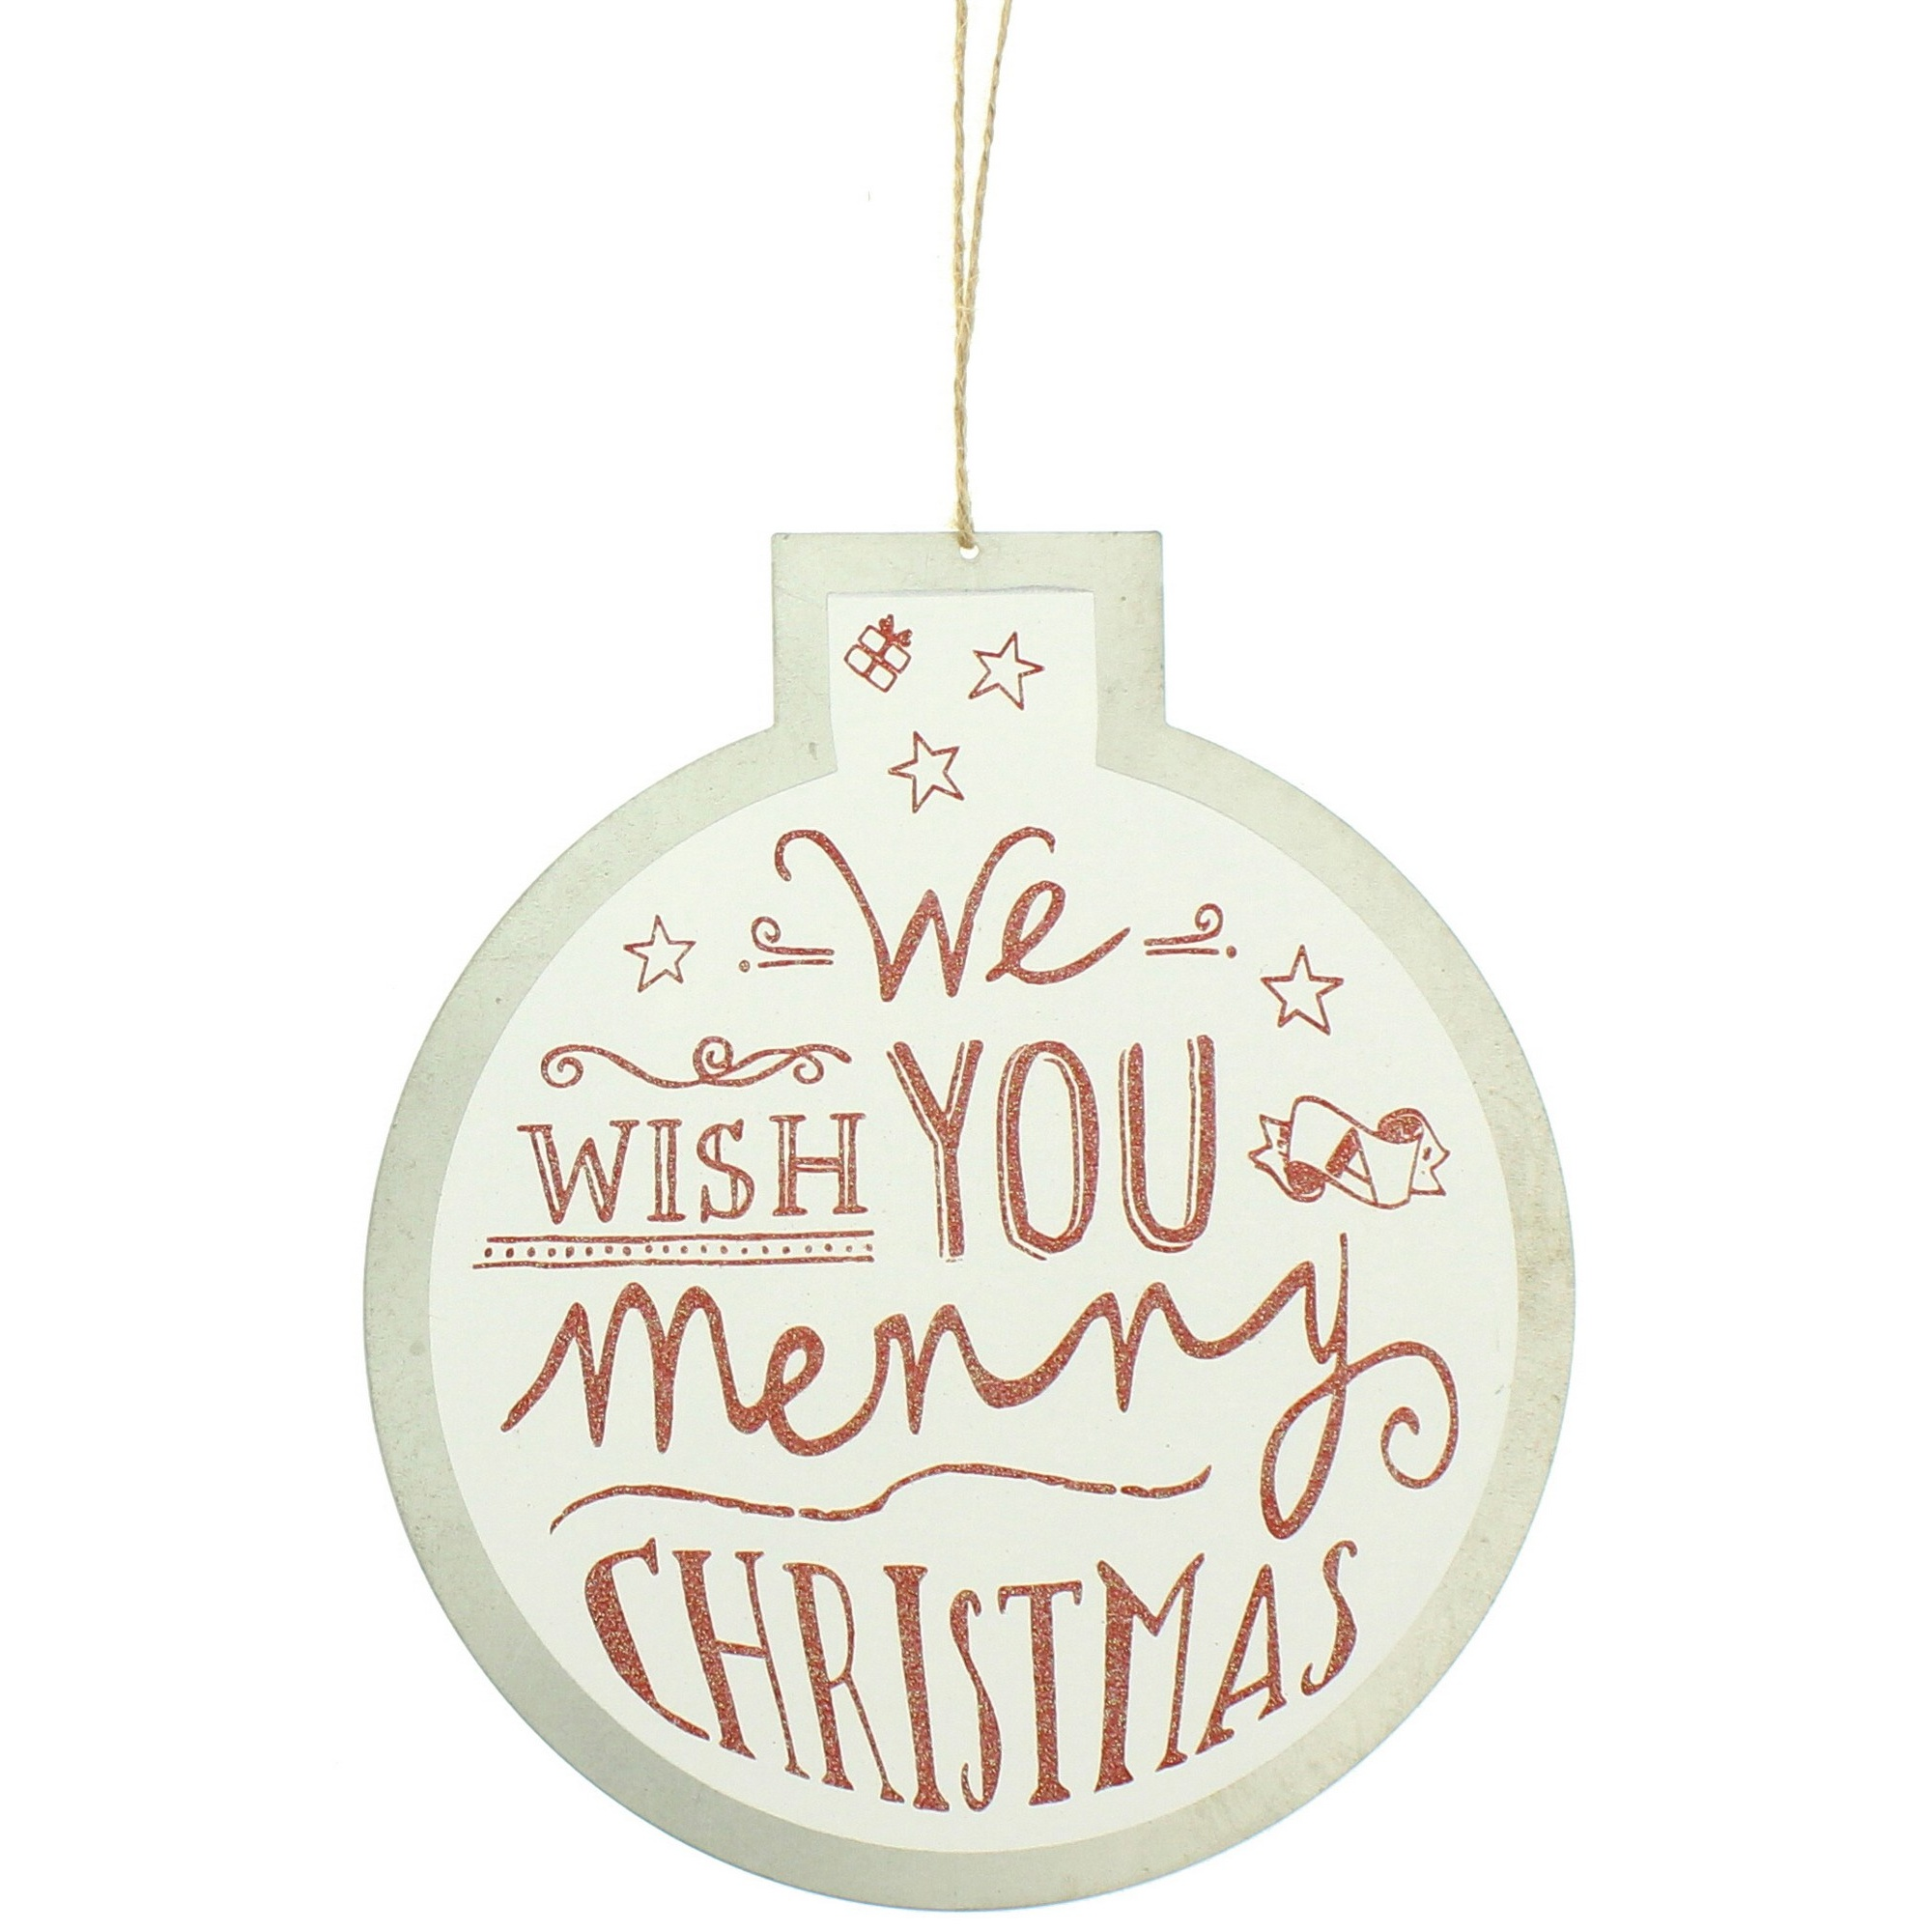 Christmas-Shop-Bauble-Sign-Decoration-RW5077